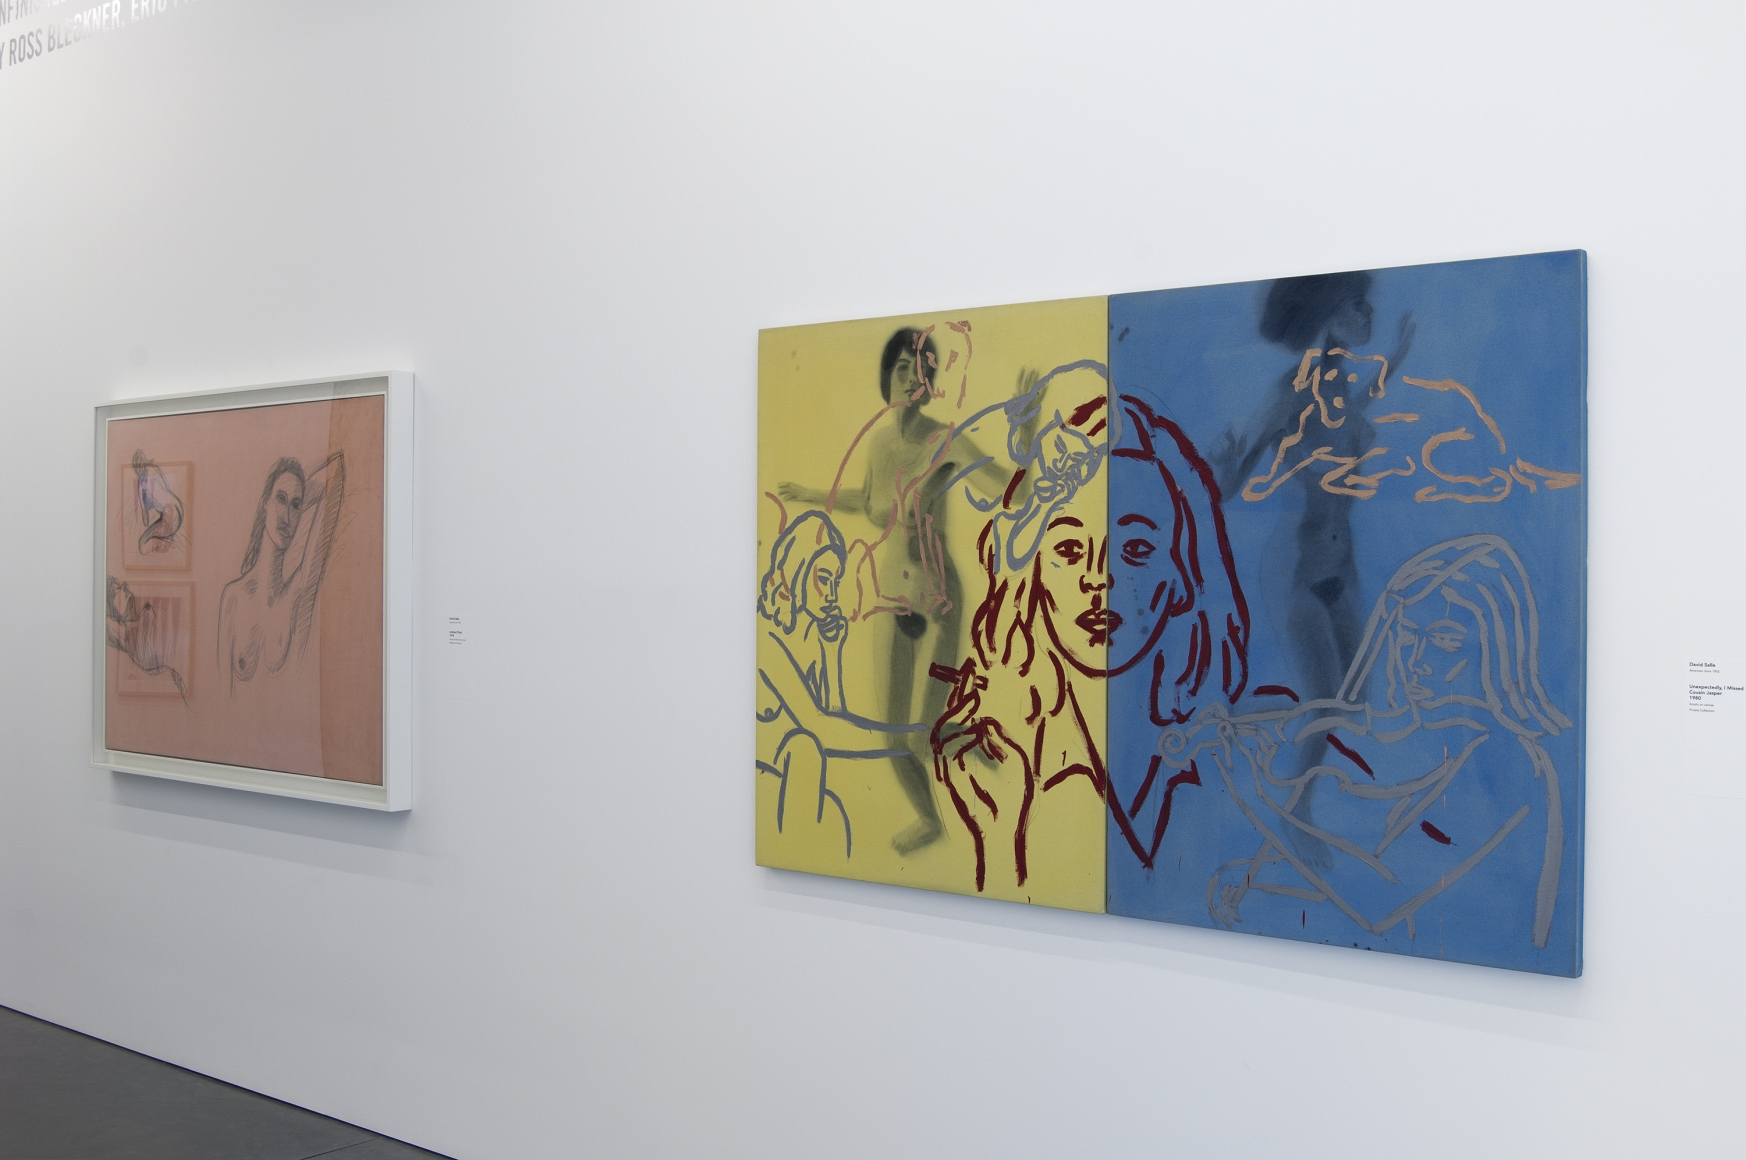 Unfinished Business: Paintings from the 1970s and 1980s by Ross Bleckner, Eric Fischl, and David Salle, Installation view, Parrish Art Museum, Water Mill, New York